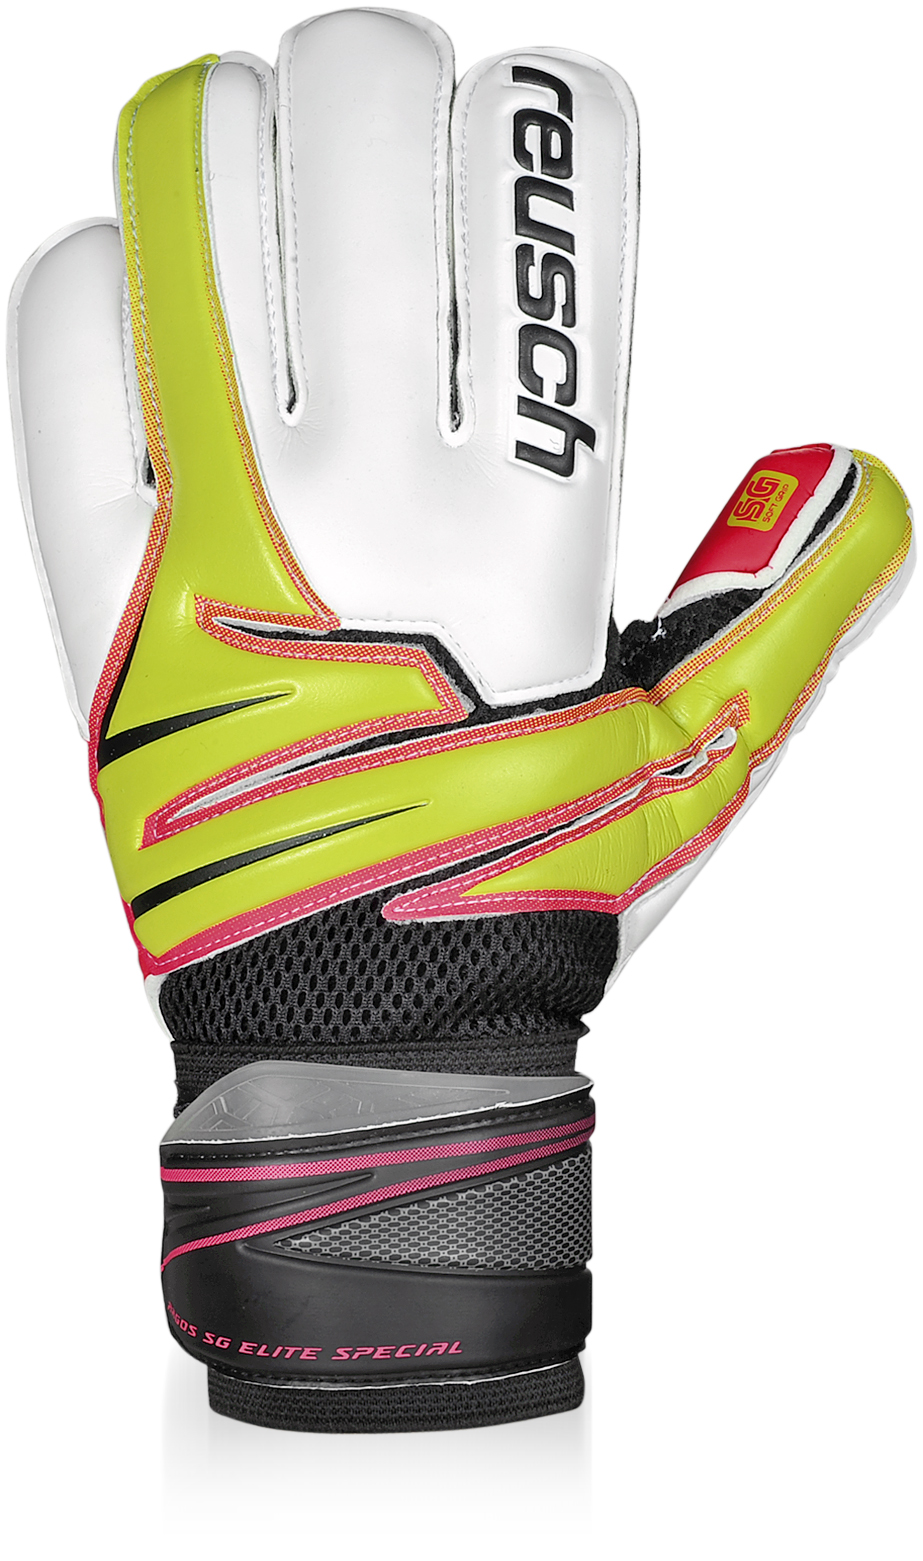 Reusch Argos Sg Elite Special Goalkeeper Gloves (lime)